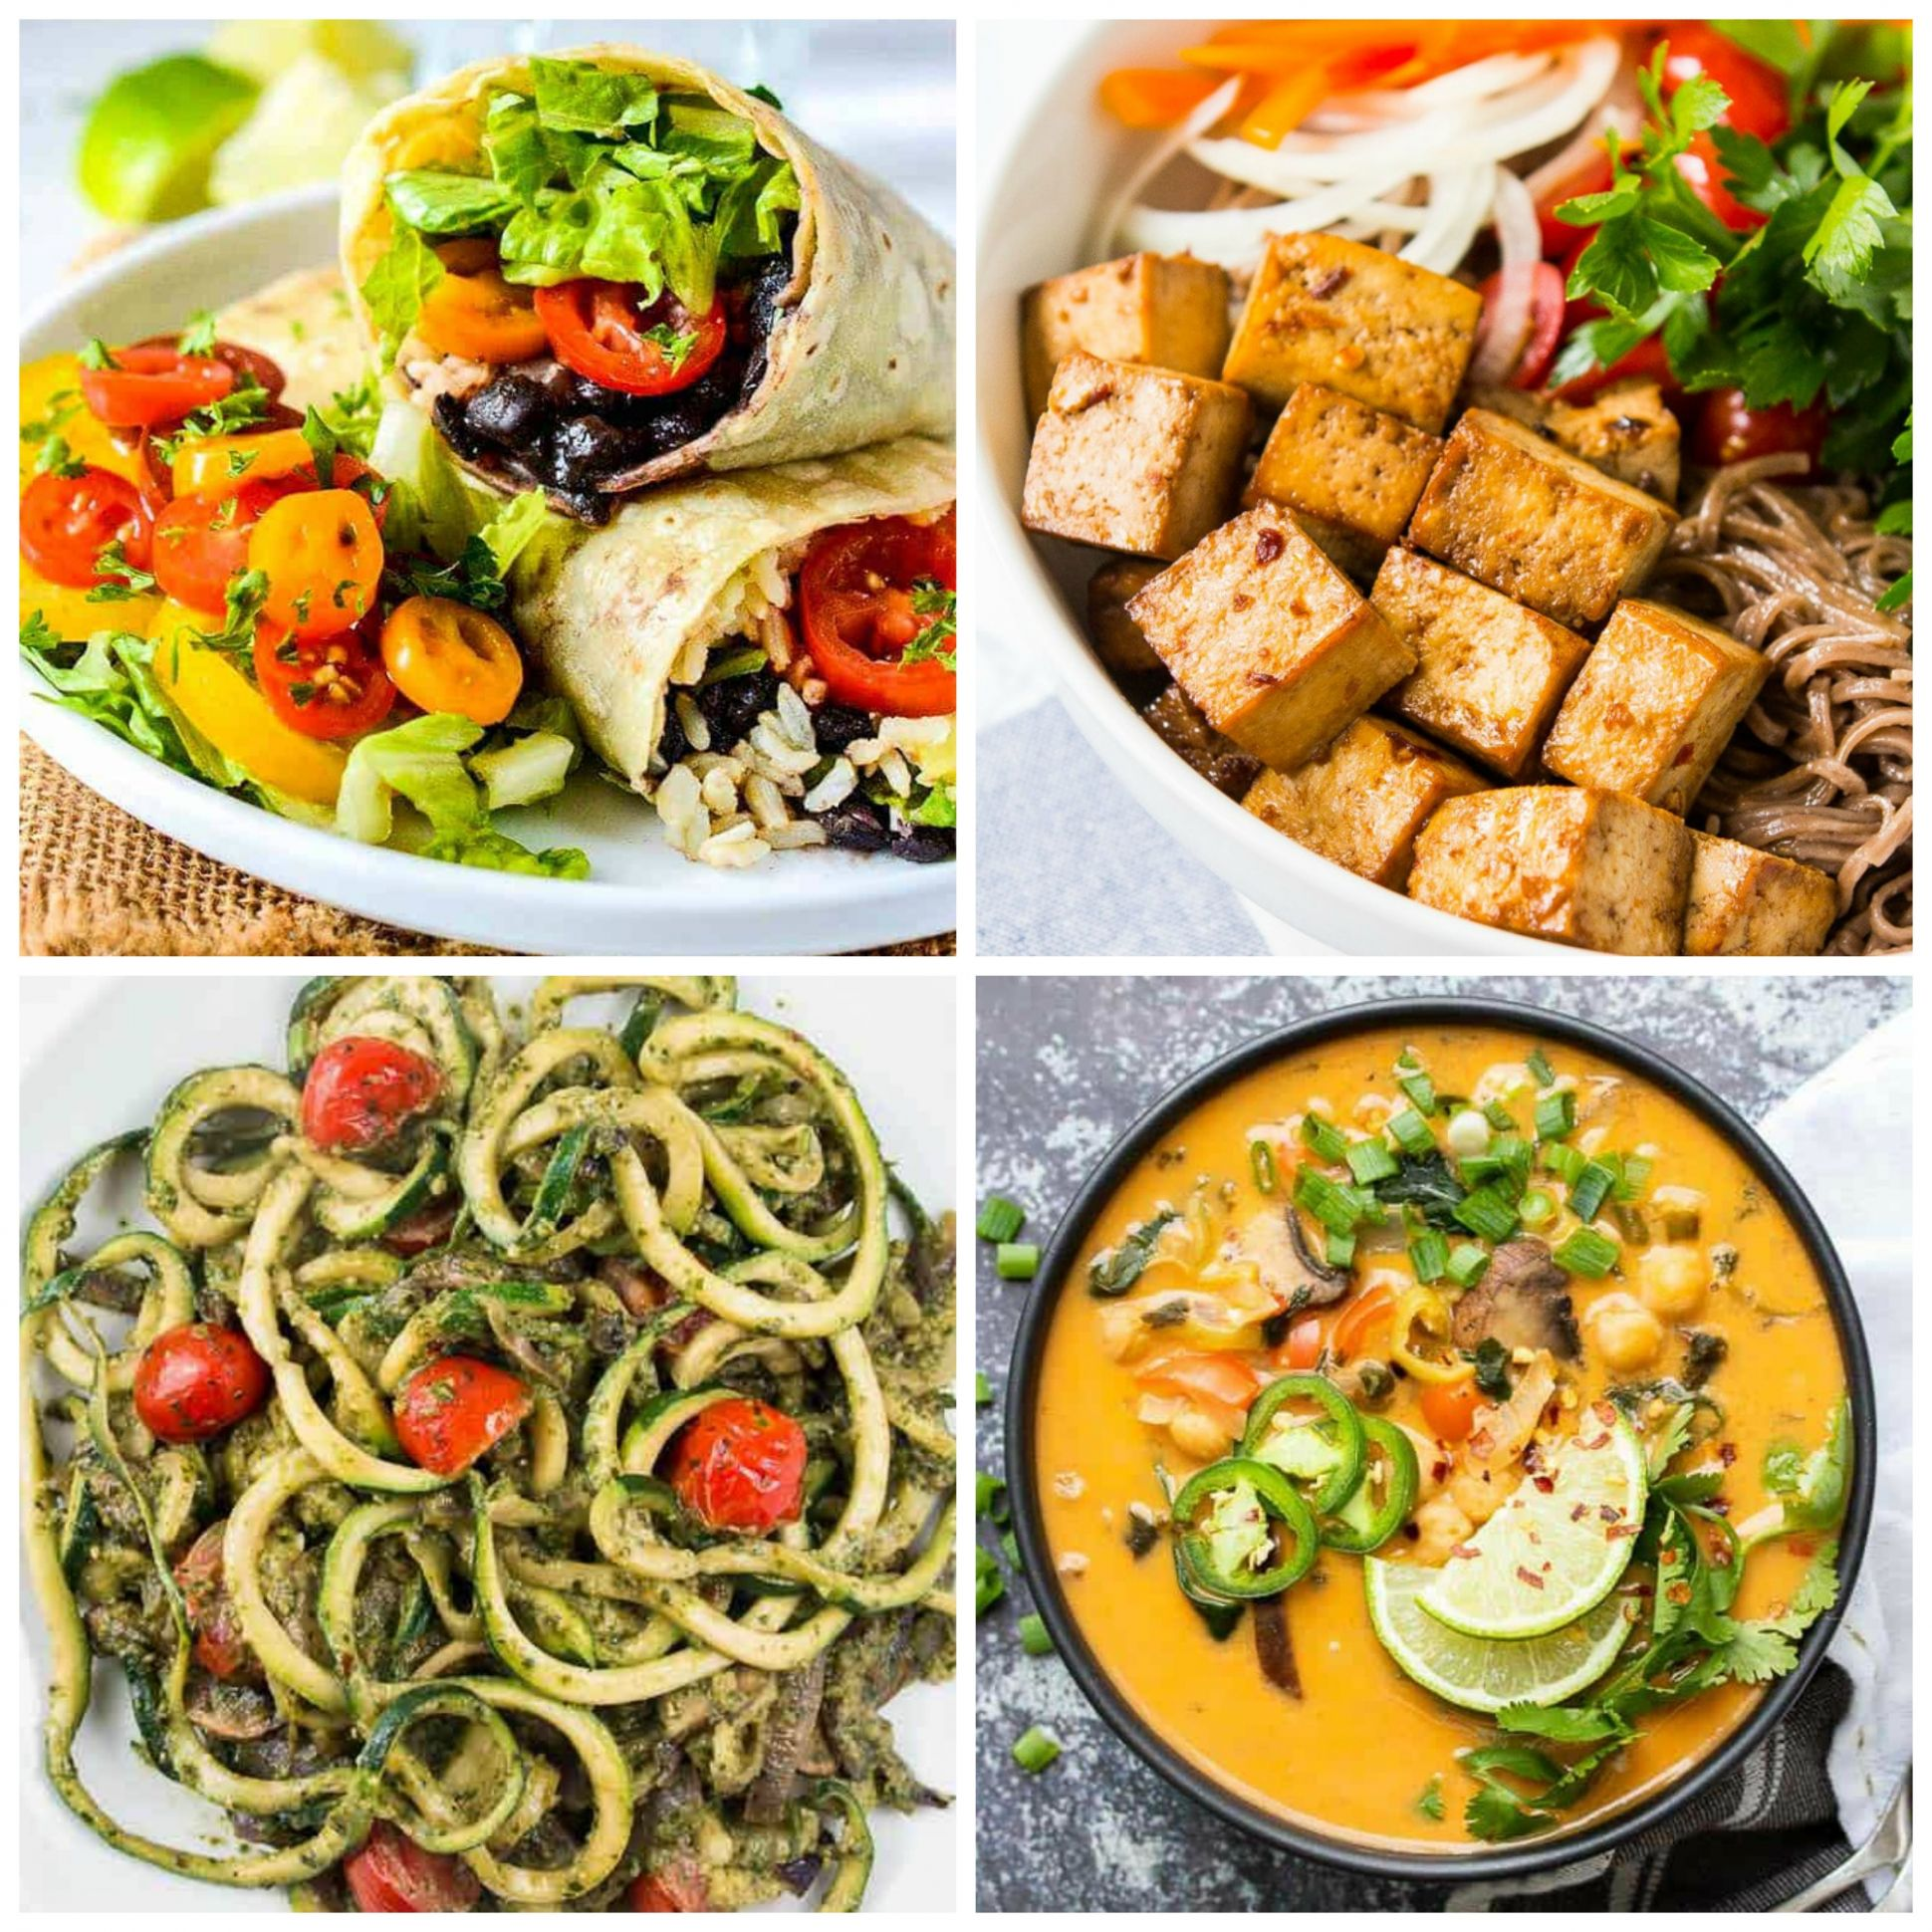 11 AMAZING Vegan Meals for Weight Loss (Gluten-Free & Low-Calorie)